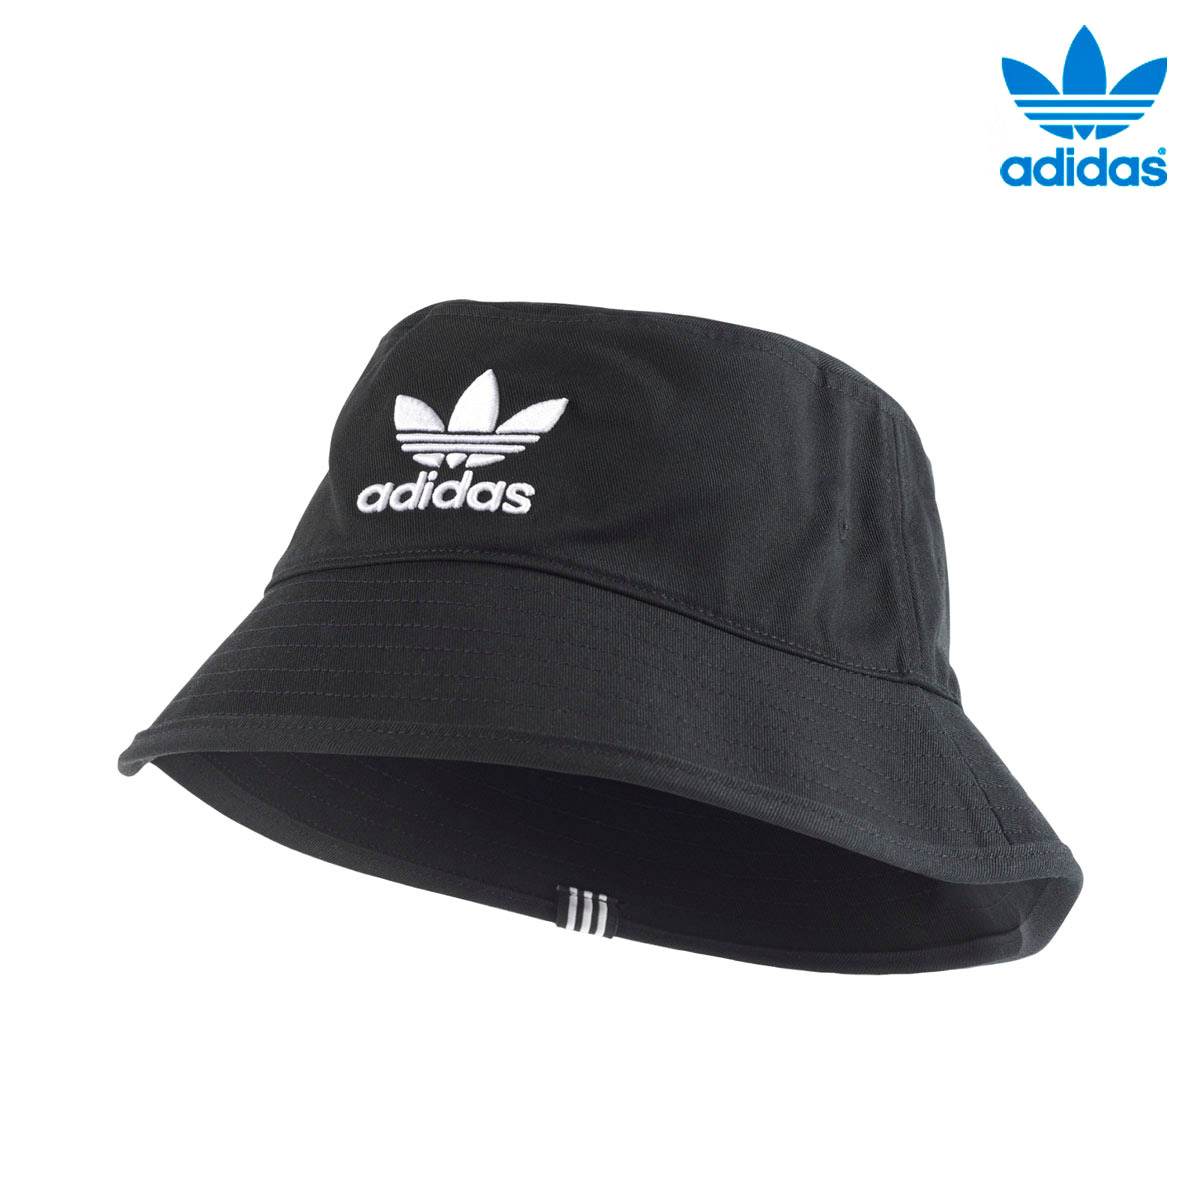 adidas Originals BUCKET HAT AC (Adidas original Suva blanket hat AC) BLACK  18SS-I 33c2cc1b0a8